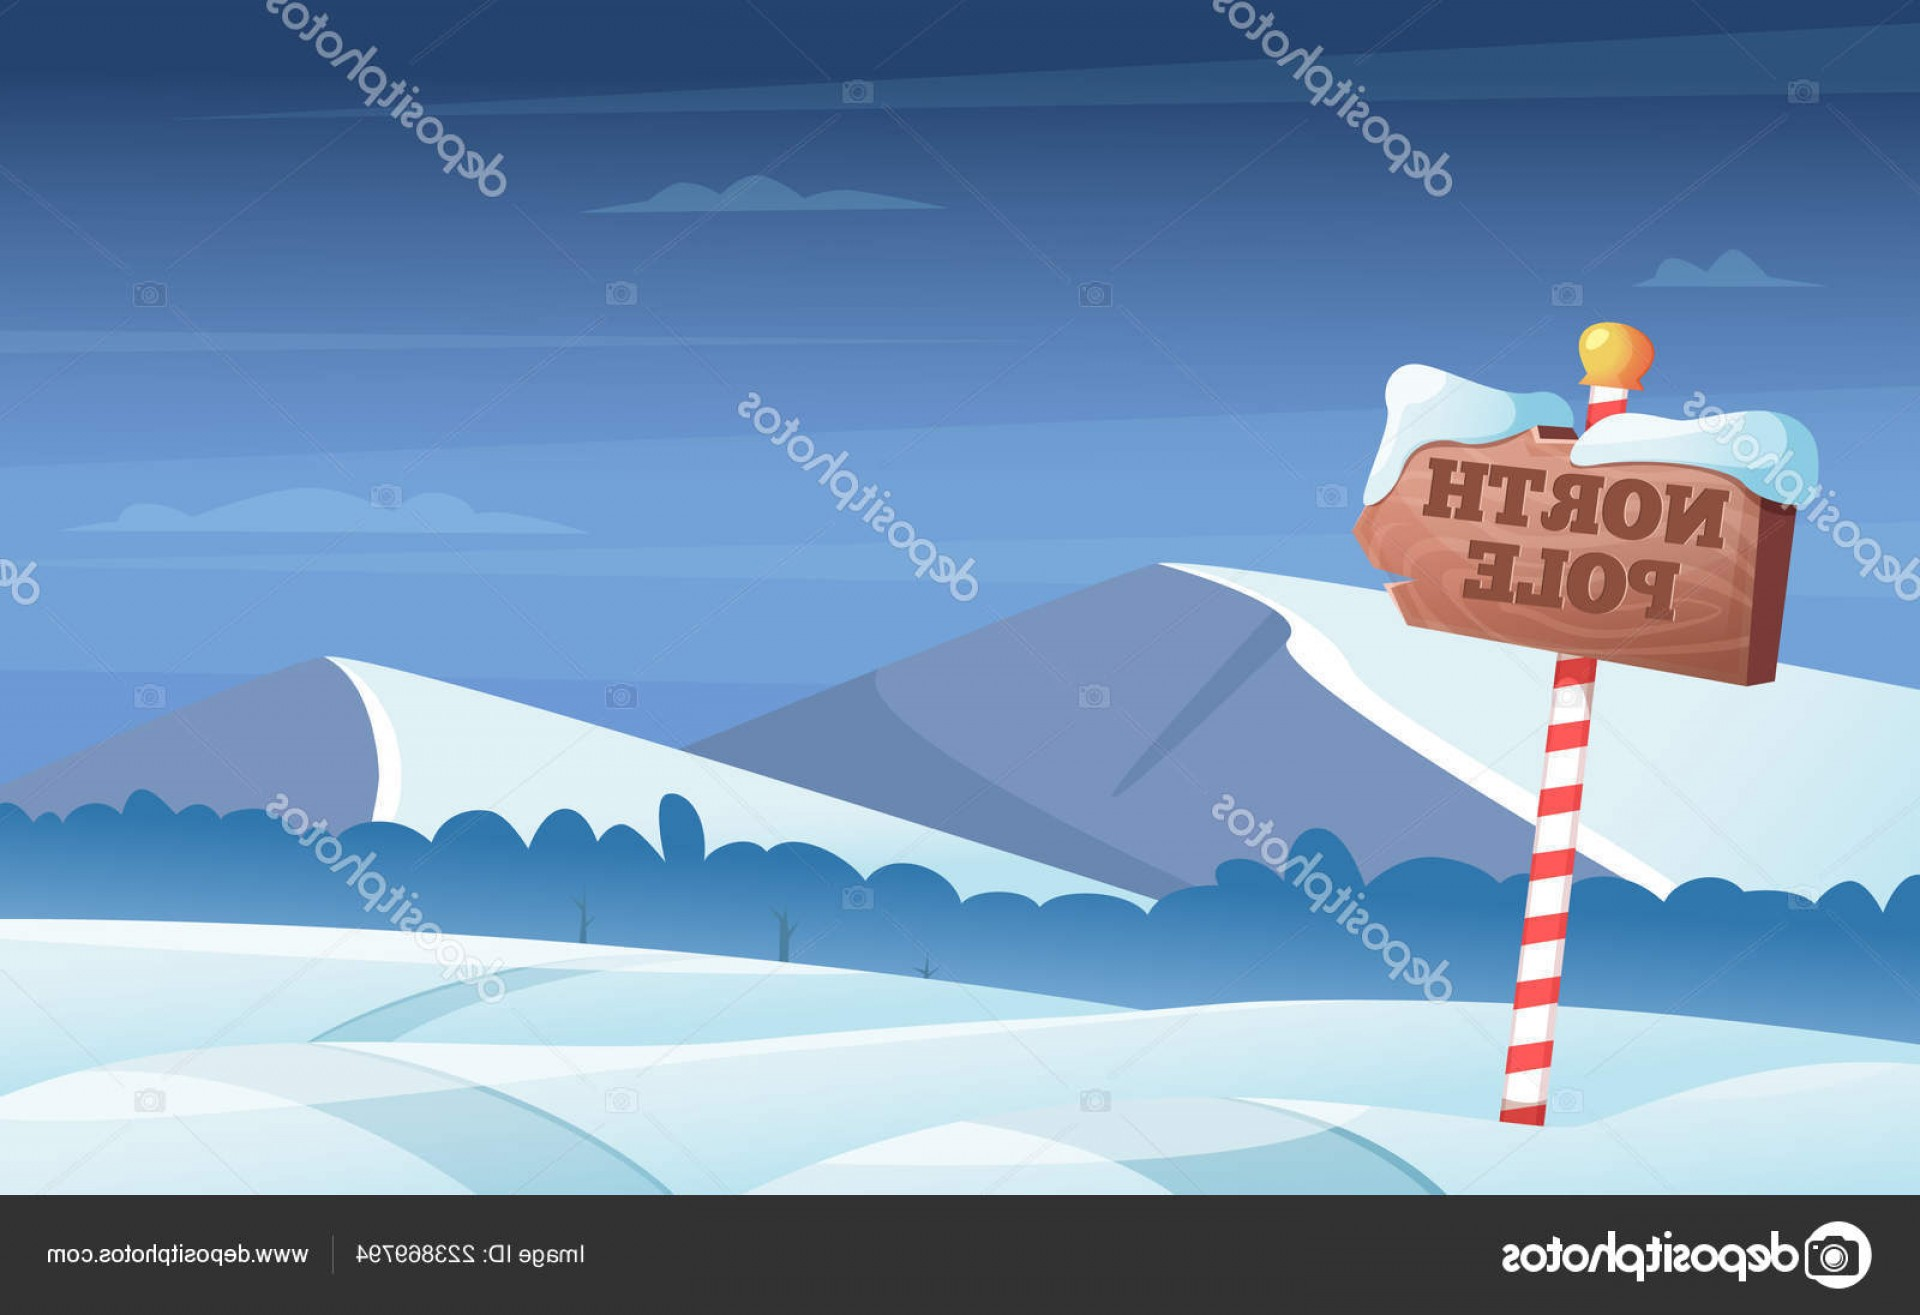 North Pole Landscape Vector: Stock Illustration North Pole Road Sign Snowy